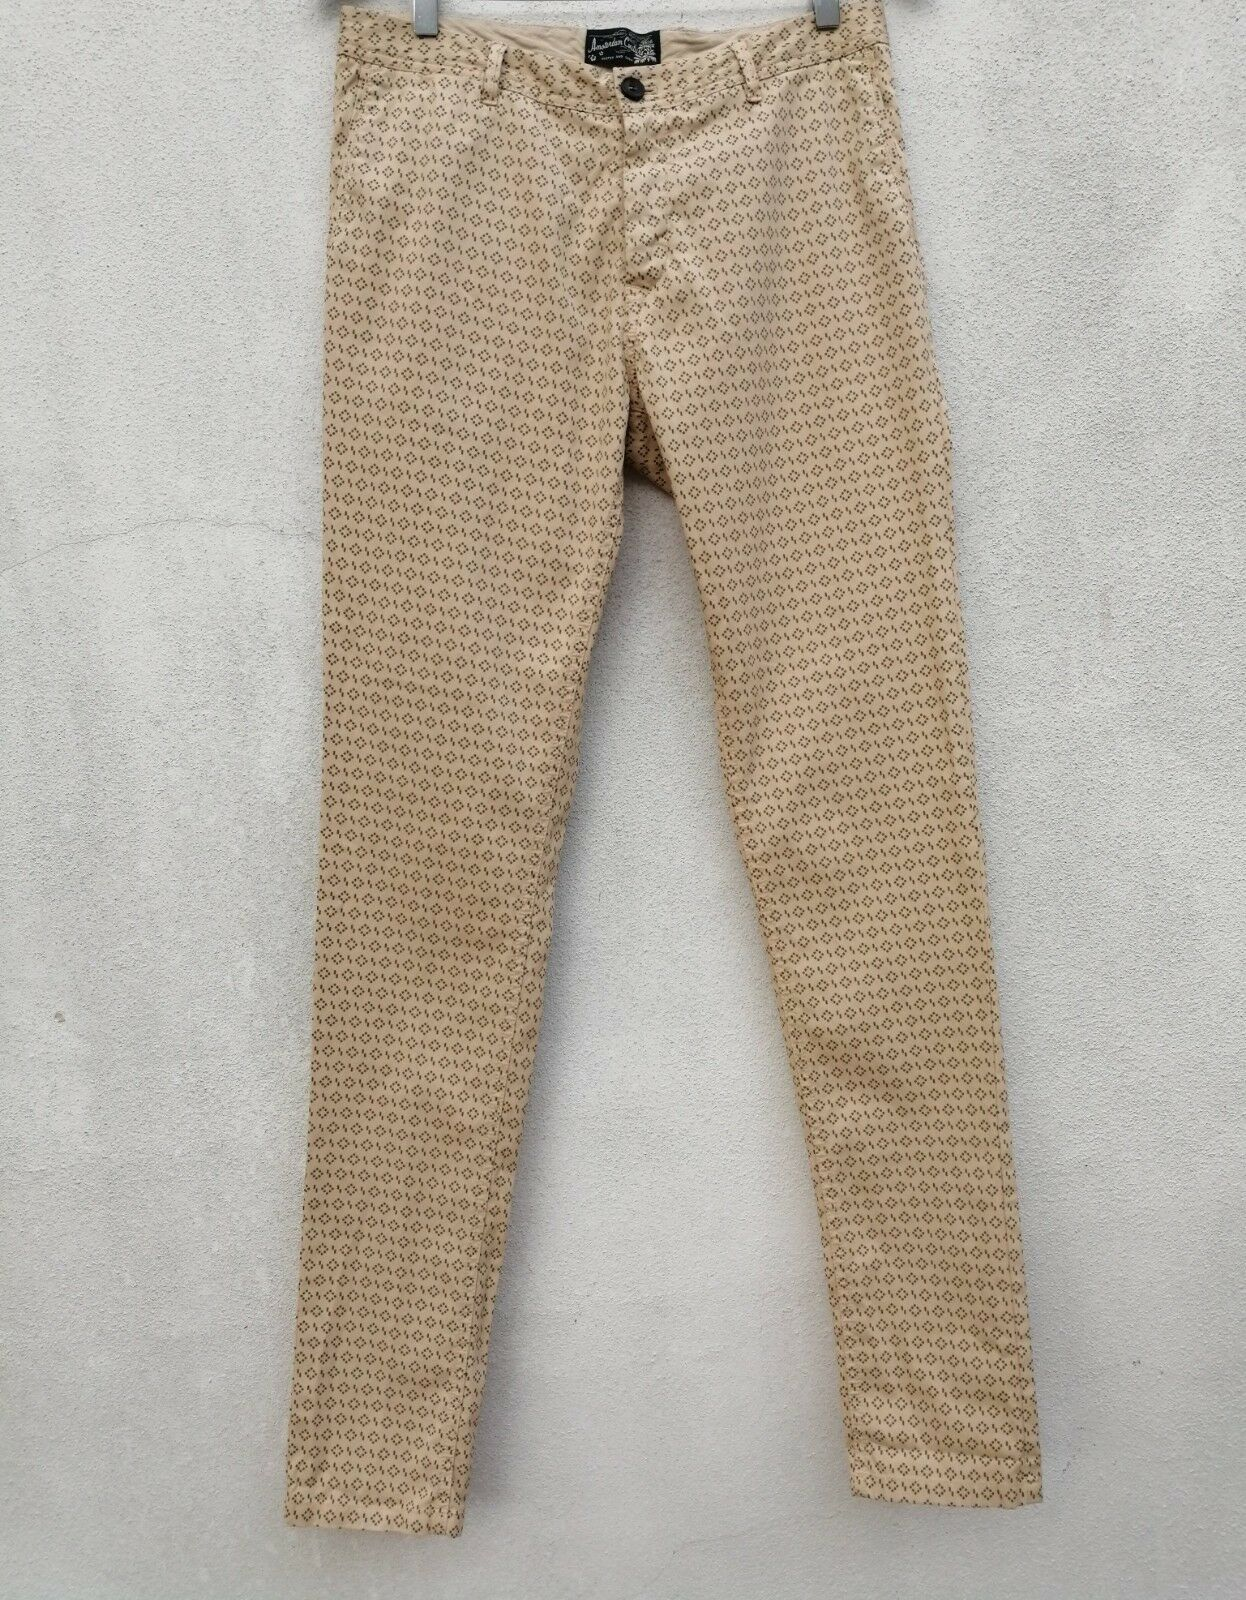 SCOTCH & SODA MOTT Men's SUPER SKINNY STRETCH Trousers Pants Beige Print W29xL34